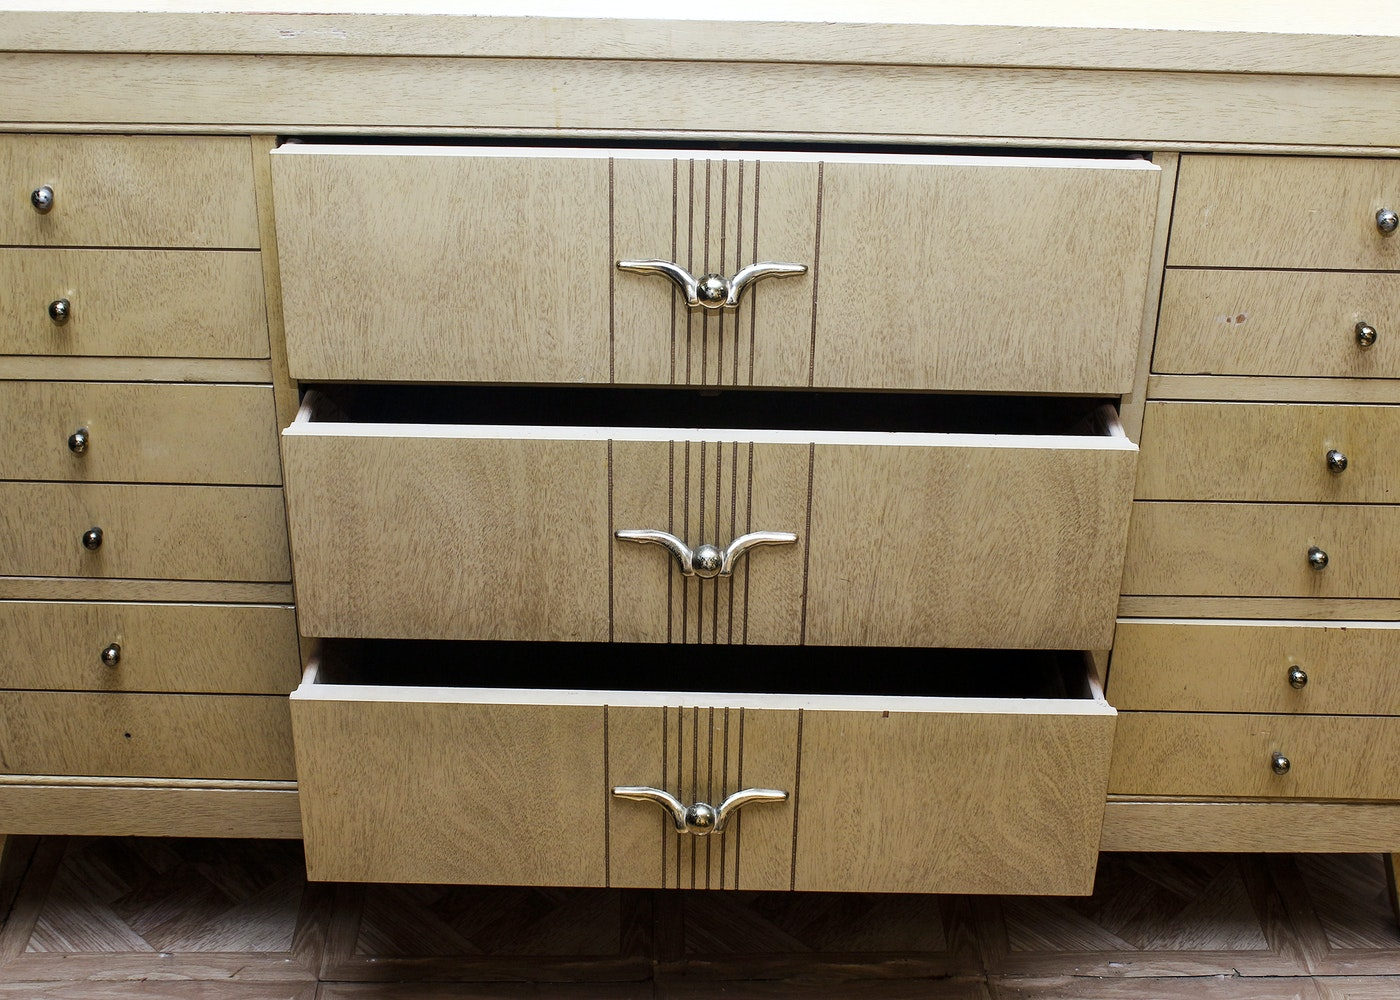 3325441 L A Period Furniture C 1950s Mid Century Dresser And Mirror also Index php likewise 1955 Desoto Fireflite Coronado likewise 4317099 Dunbar Tambour Front Storage Cabi together with Two Toned Hair Styles. on 1950s auto three tone